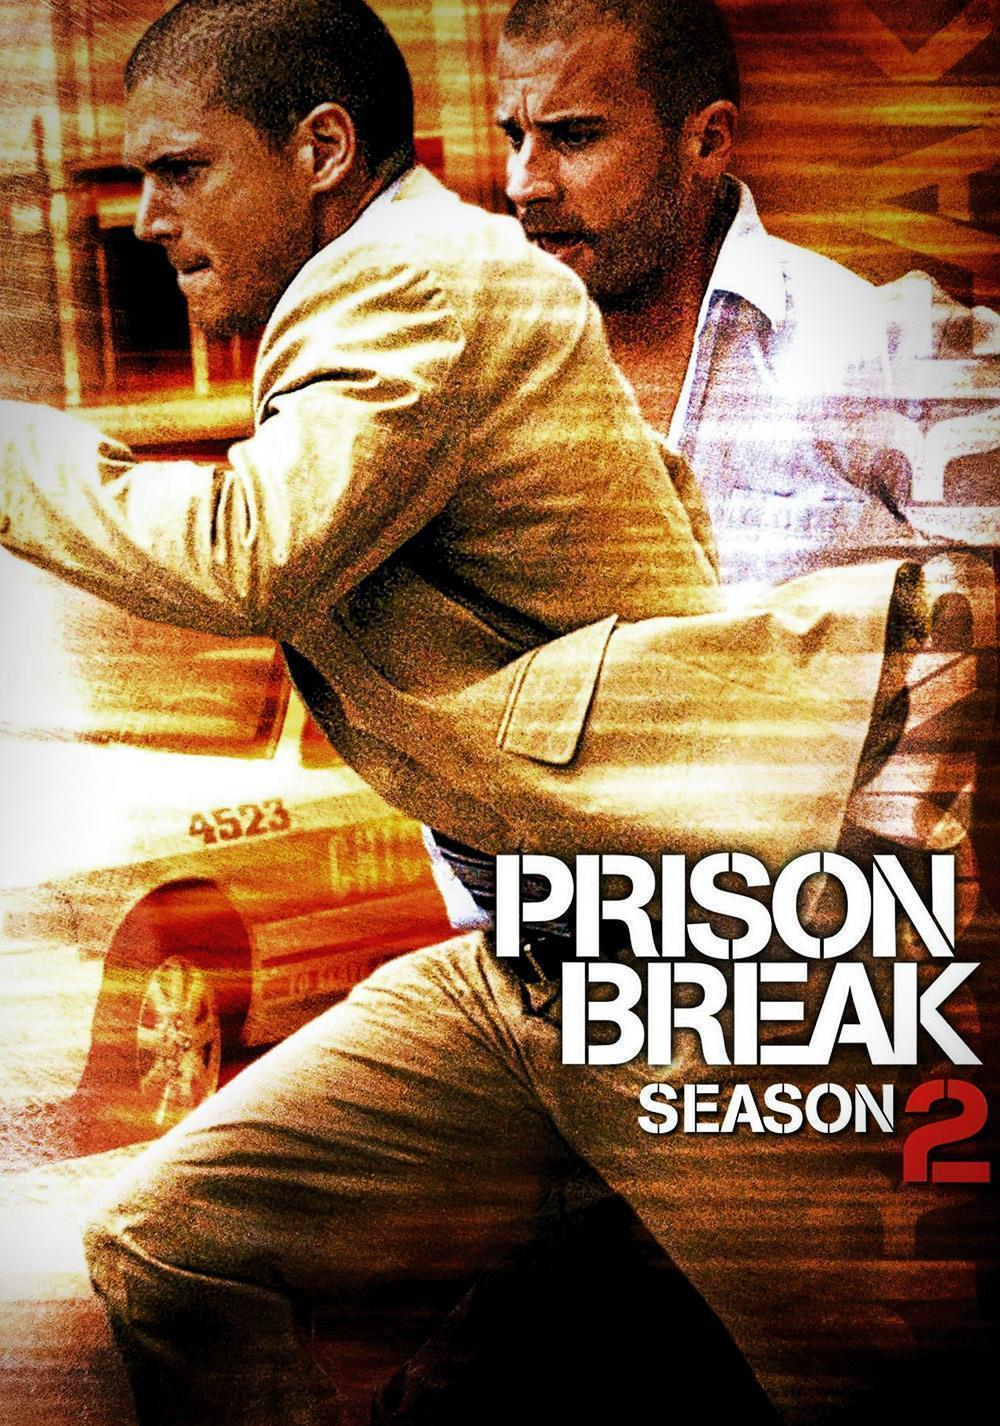 cattura di Prison Break S03E01-13 m1080p